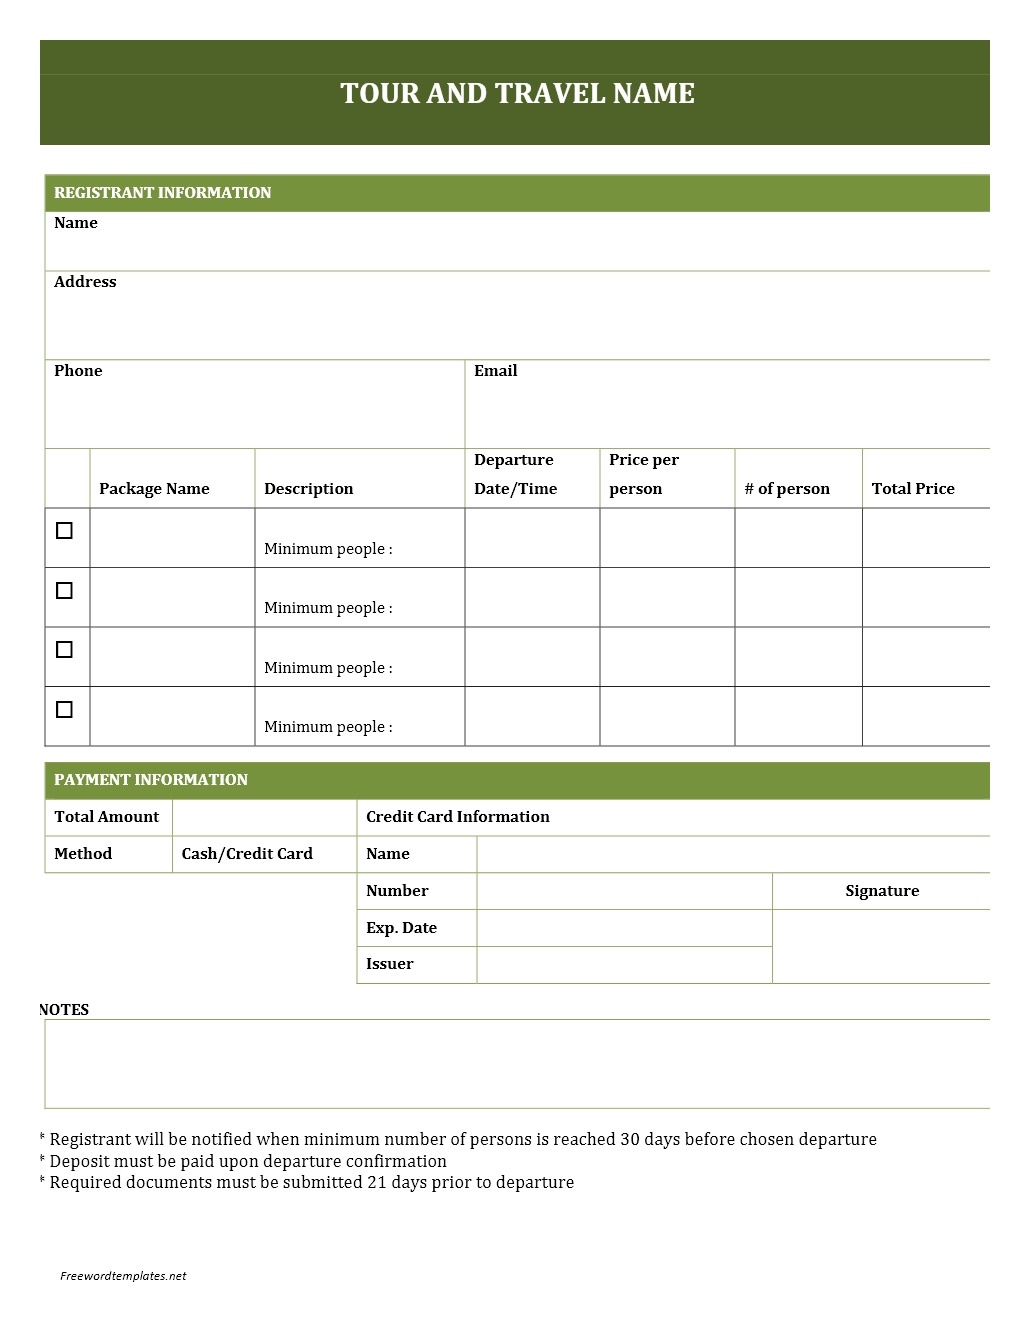 booking confirmation template delivery confirmation form template tour